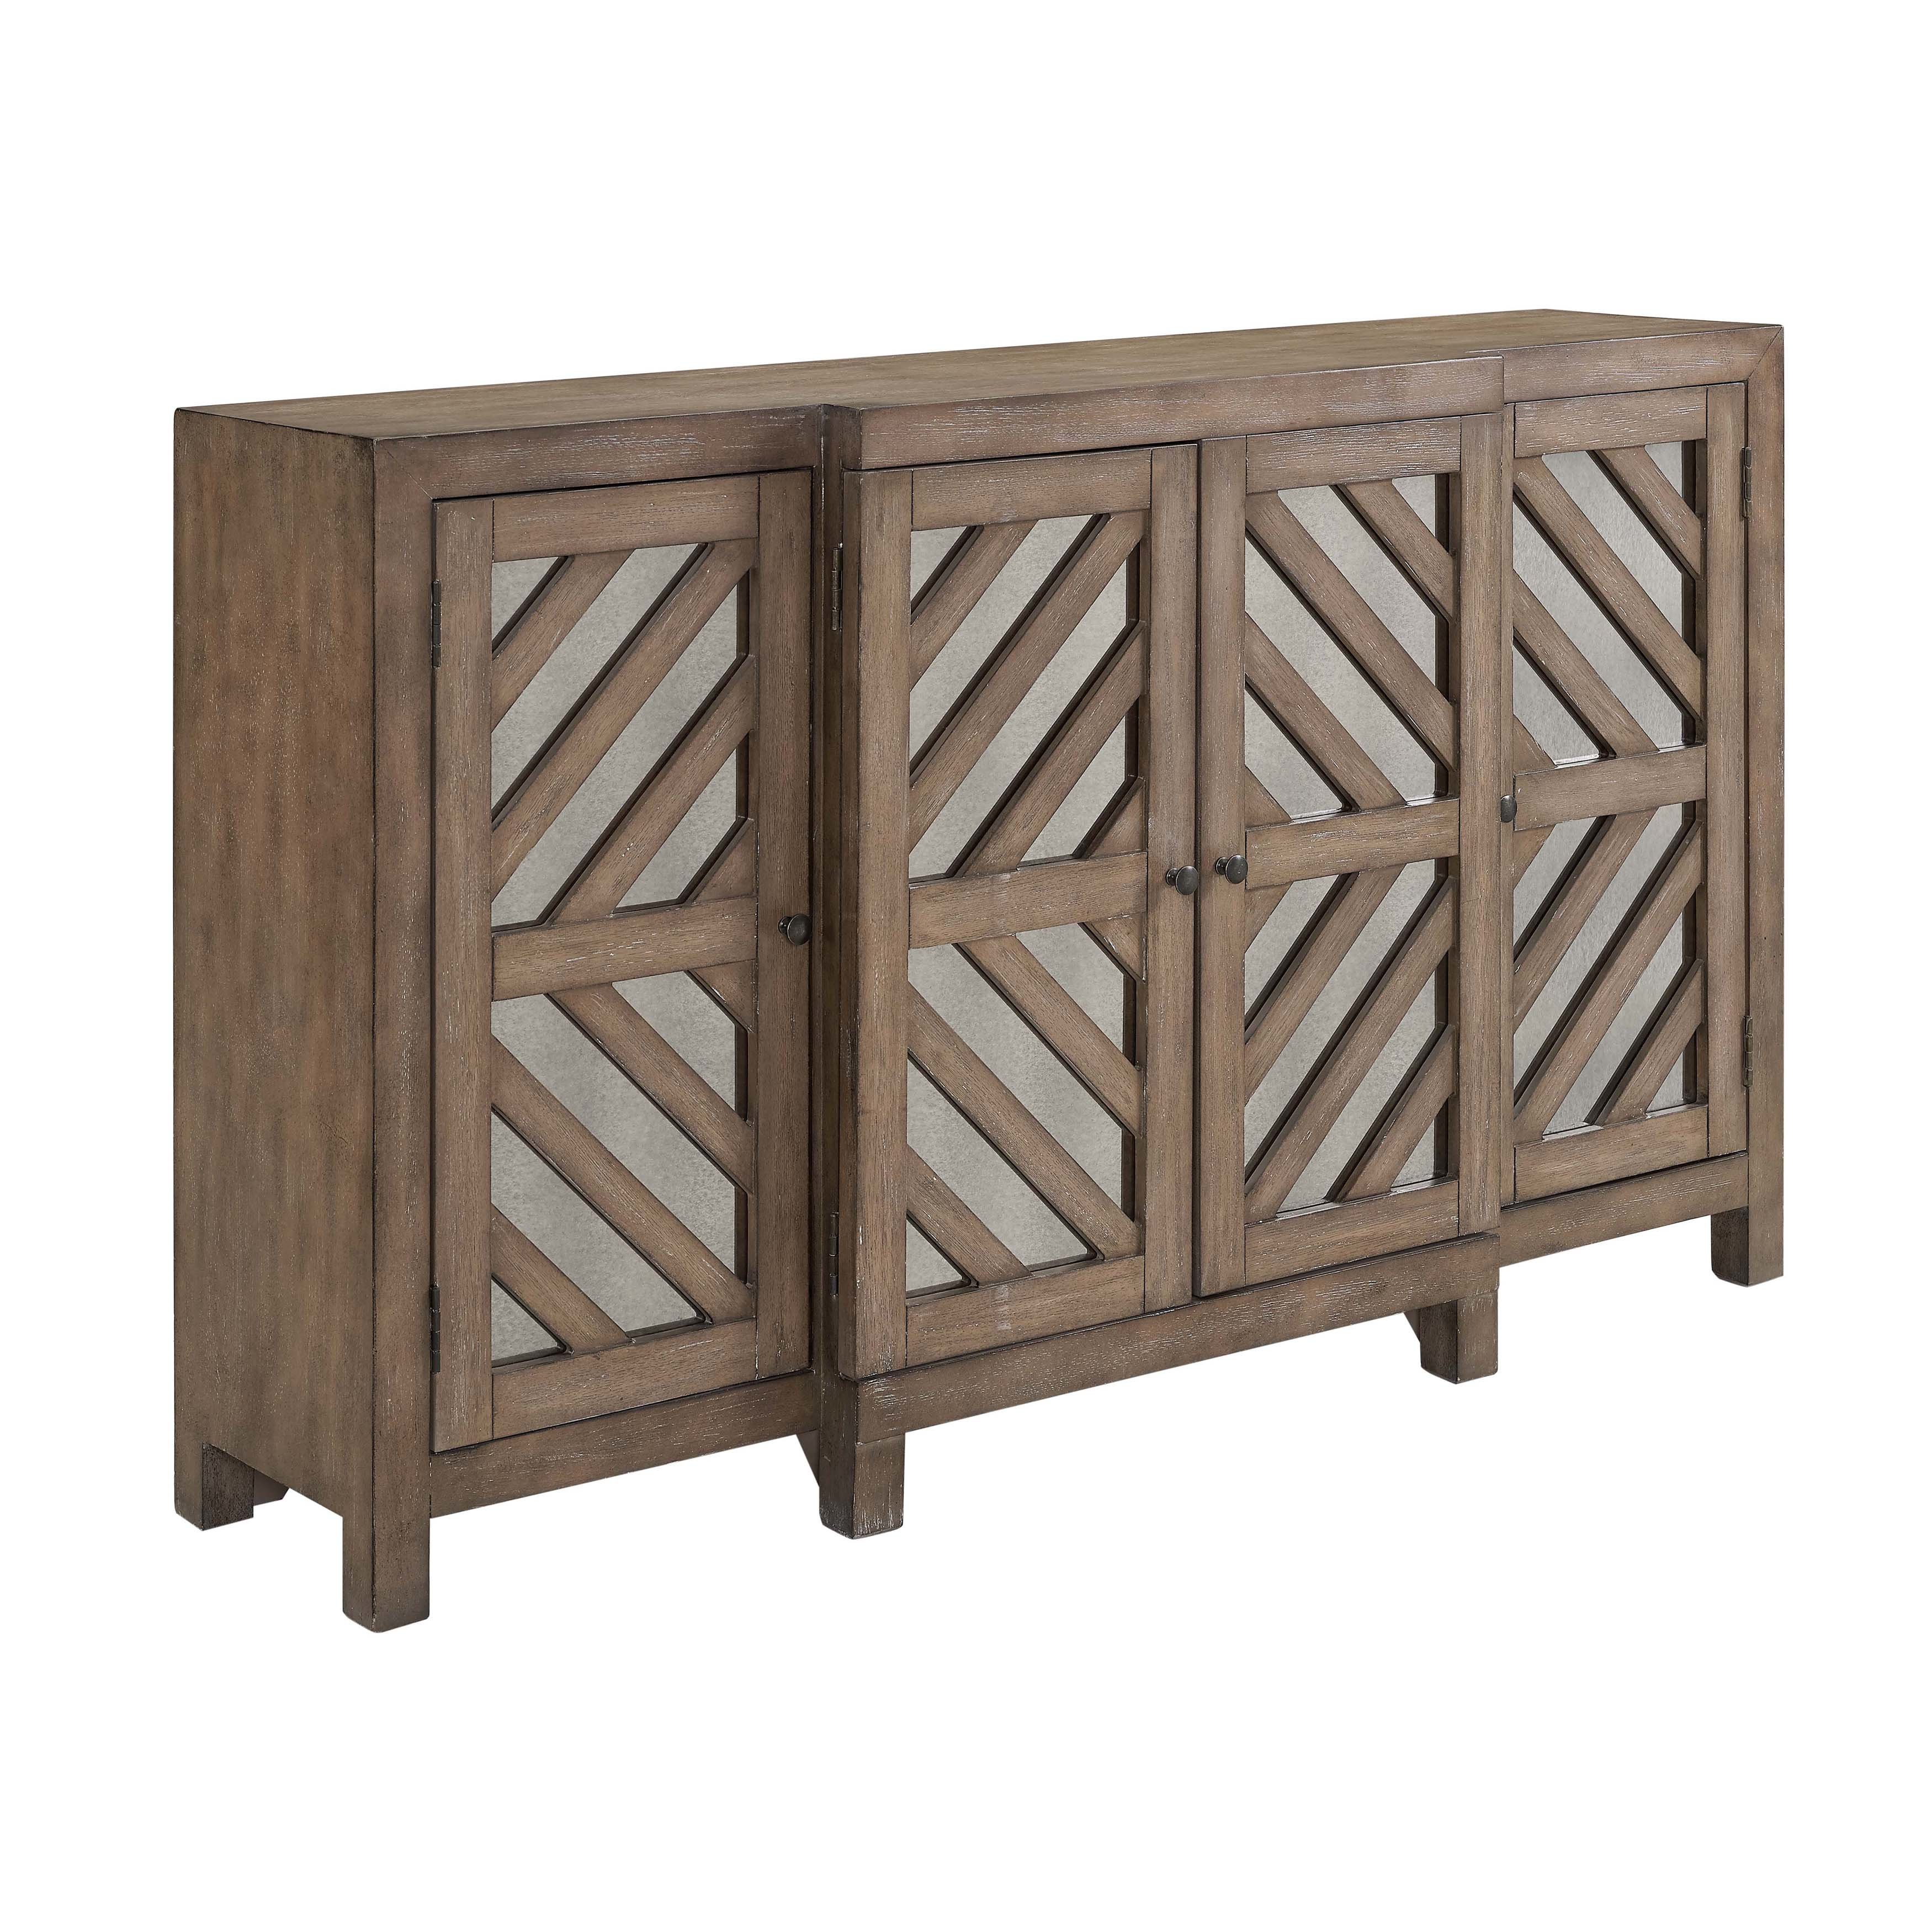 Farmhouse & Rustic Sideboards & Buffets | Birch Lane Inside Cambrai Sideboards (View 8 of 30)